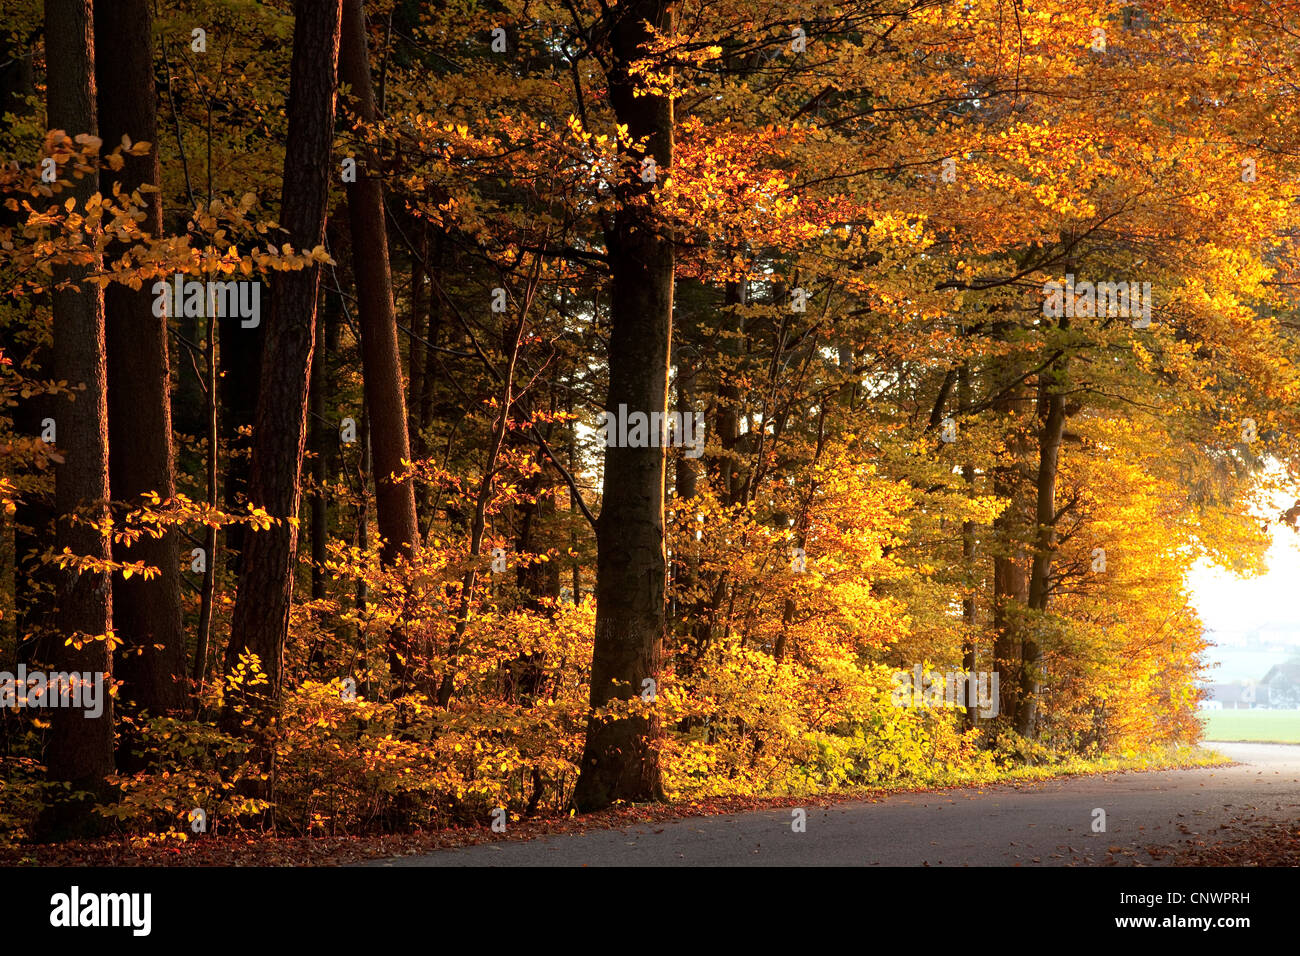 common beech (Fagus sylvatica), beech forest edge in autumn colors, Germany, Bavaria - Stock Image